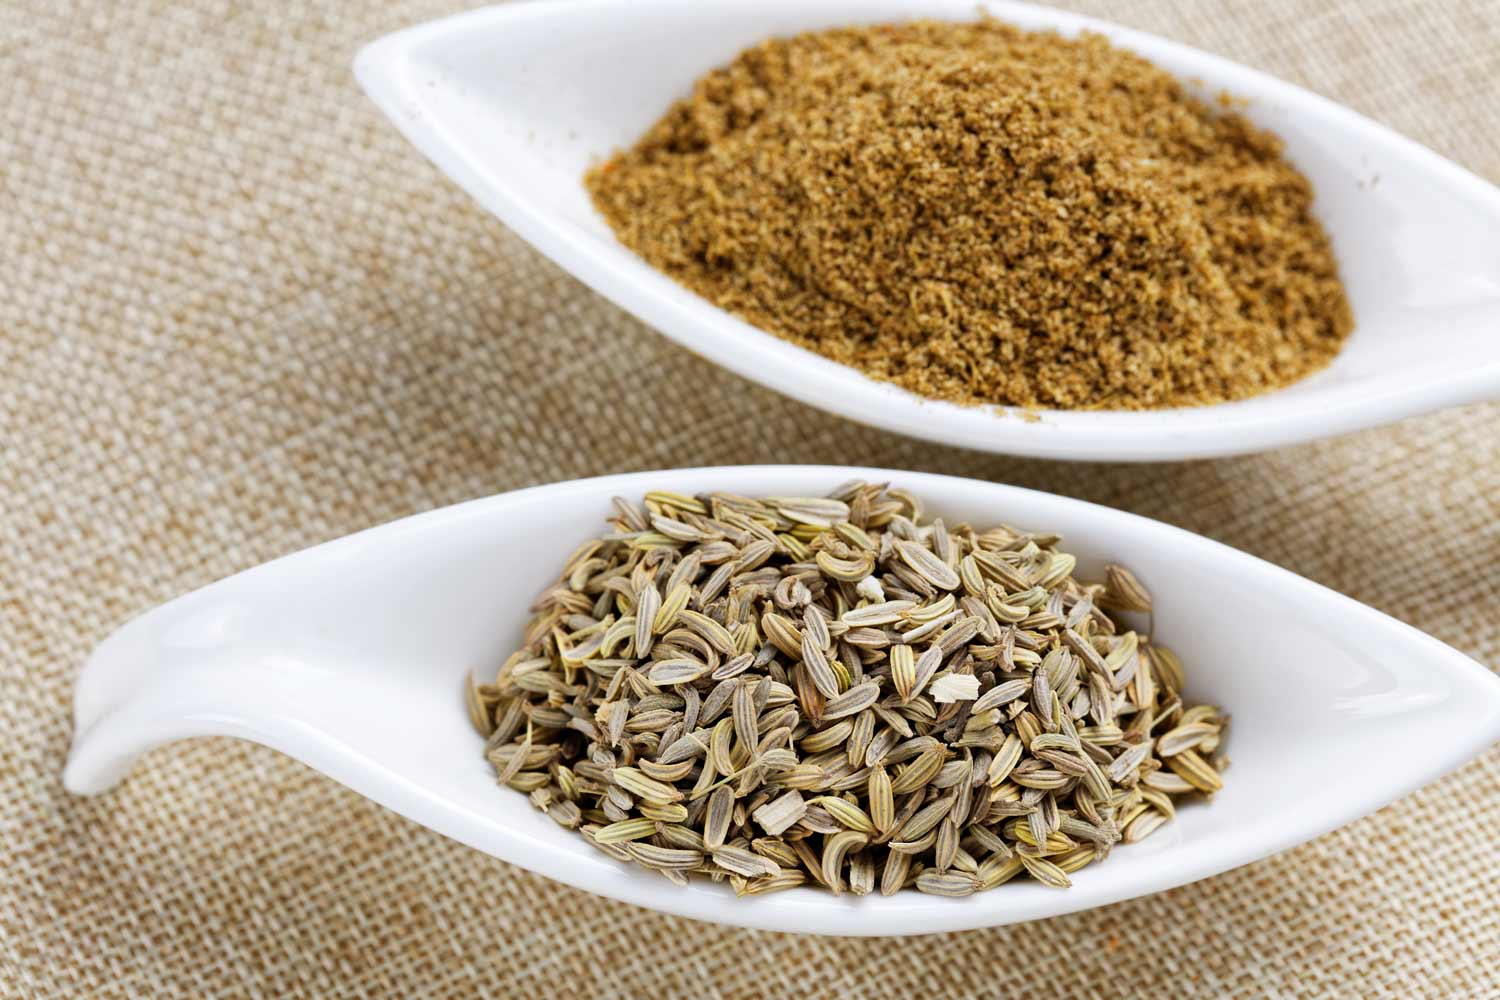 fennel seeds and ground fennel